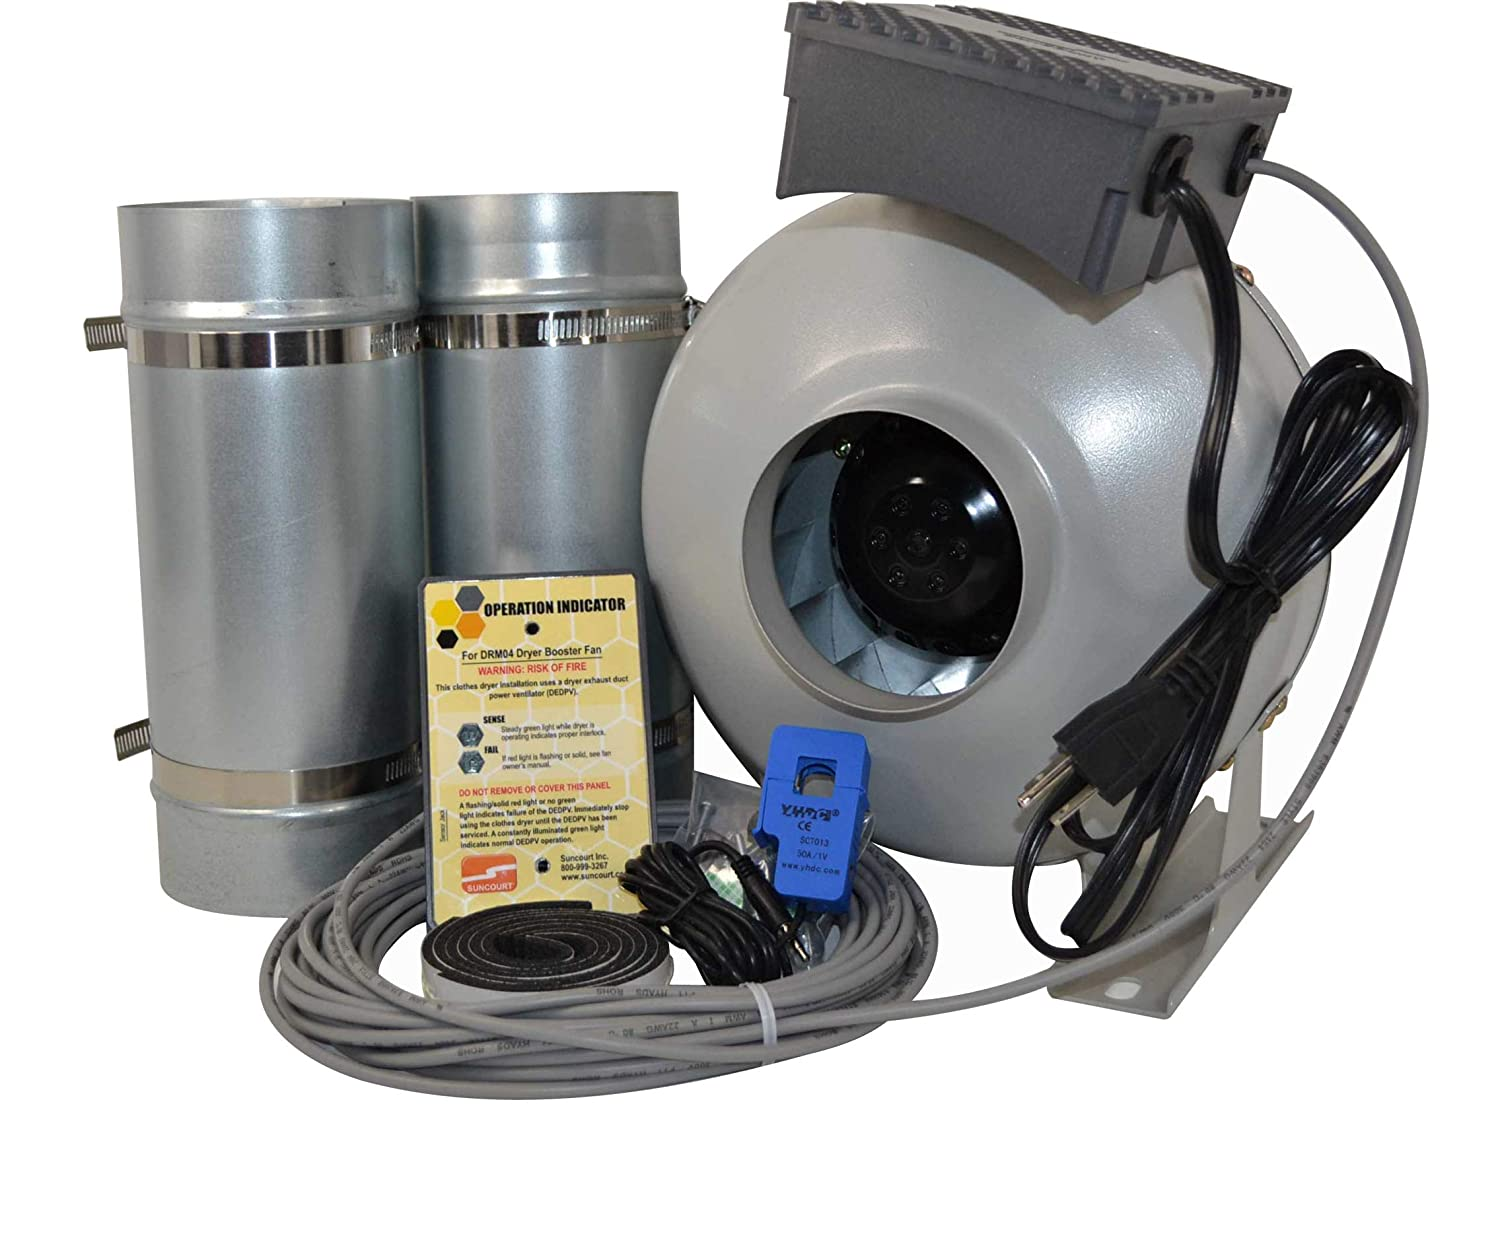 Suncourt Centrax Dryer Boosting Kit, 4 Inch, Energy Saving Duct Fan